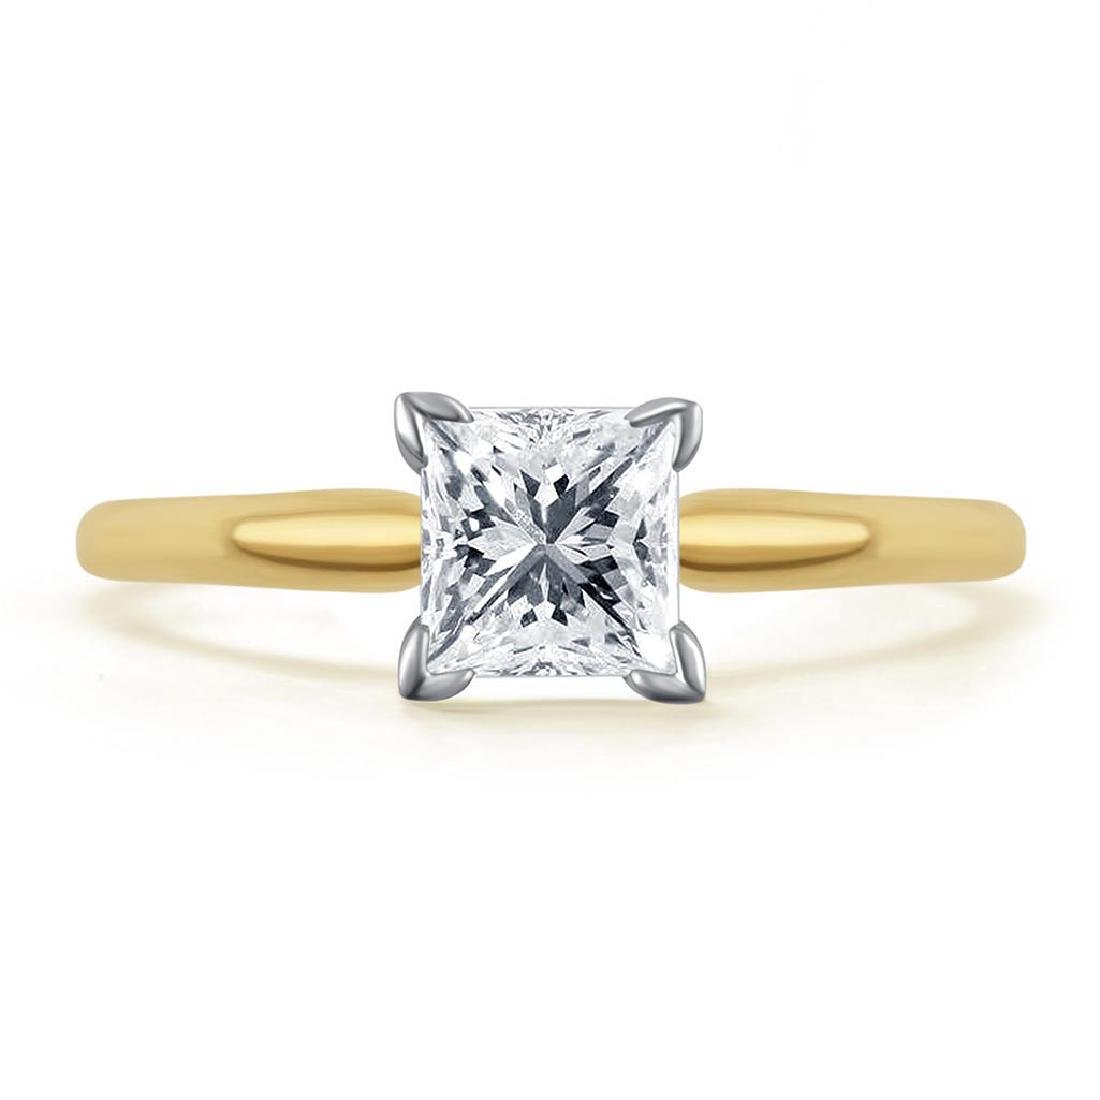 CERTIFIED 1.01 CTW PRINCESS F/VS1 SOLITAIRE RING IN 14K